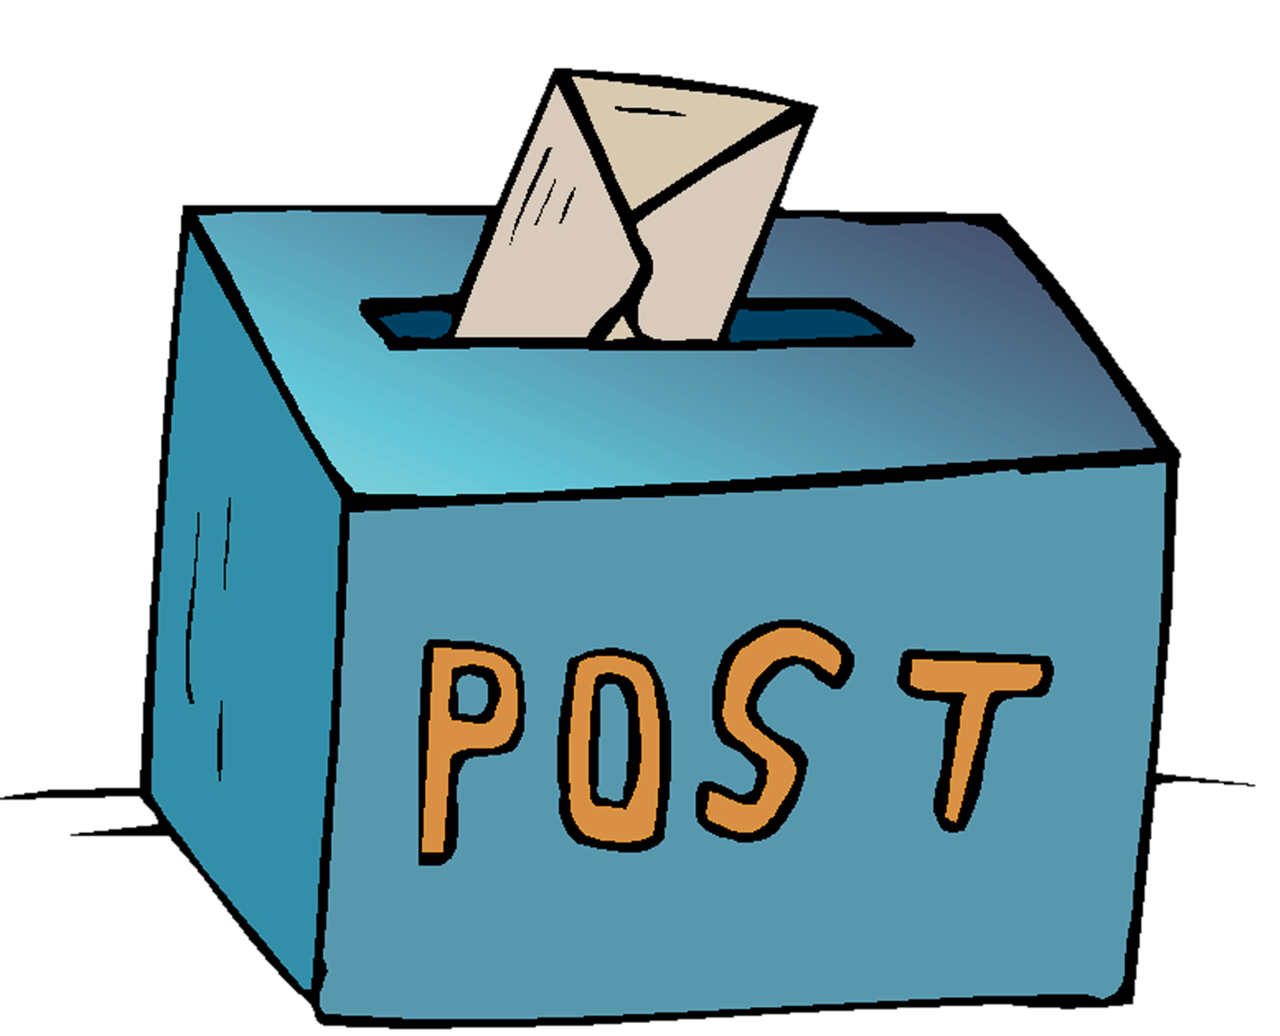 Post Box Package Cardboard